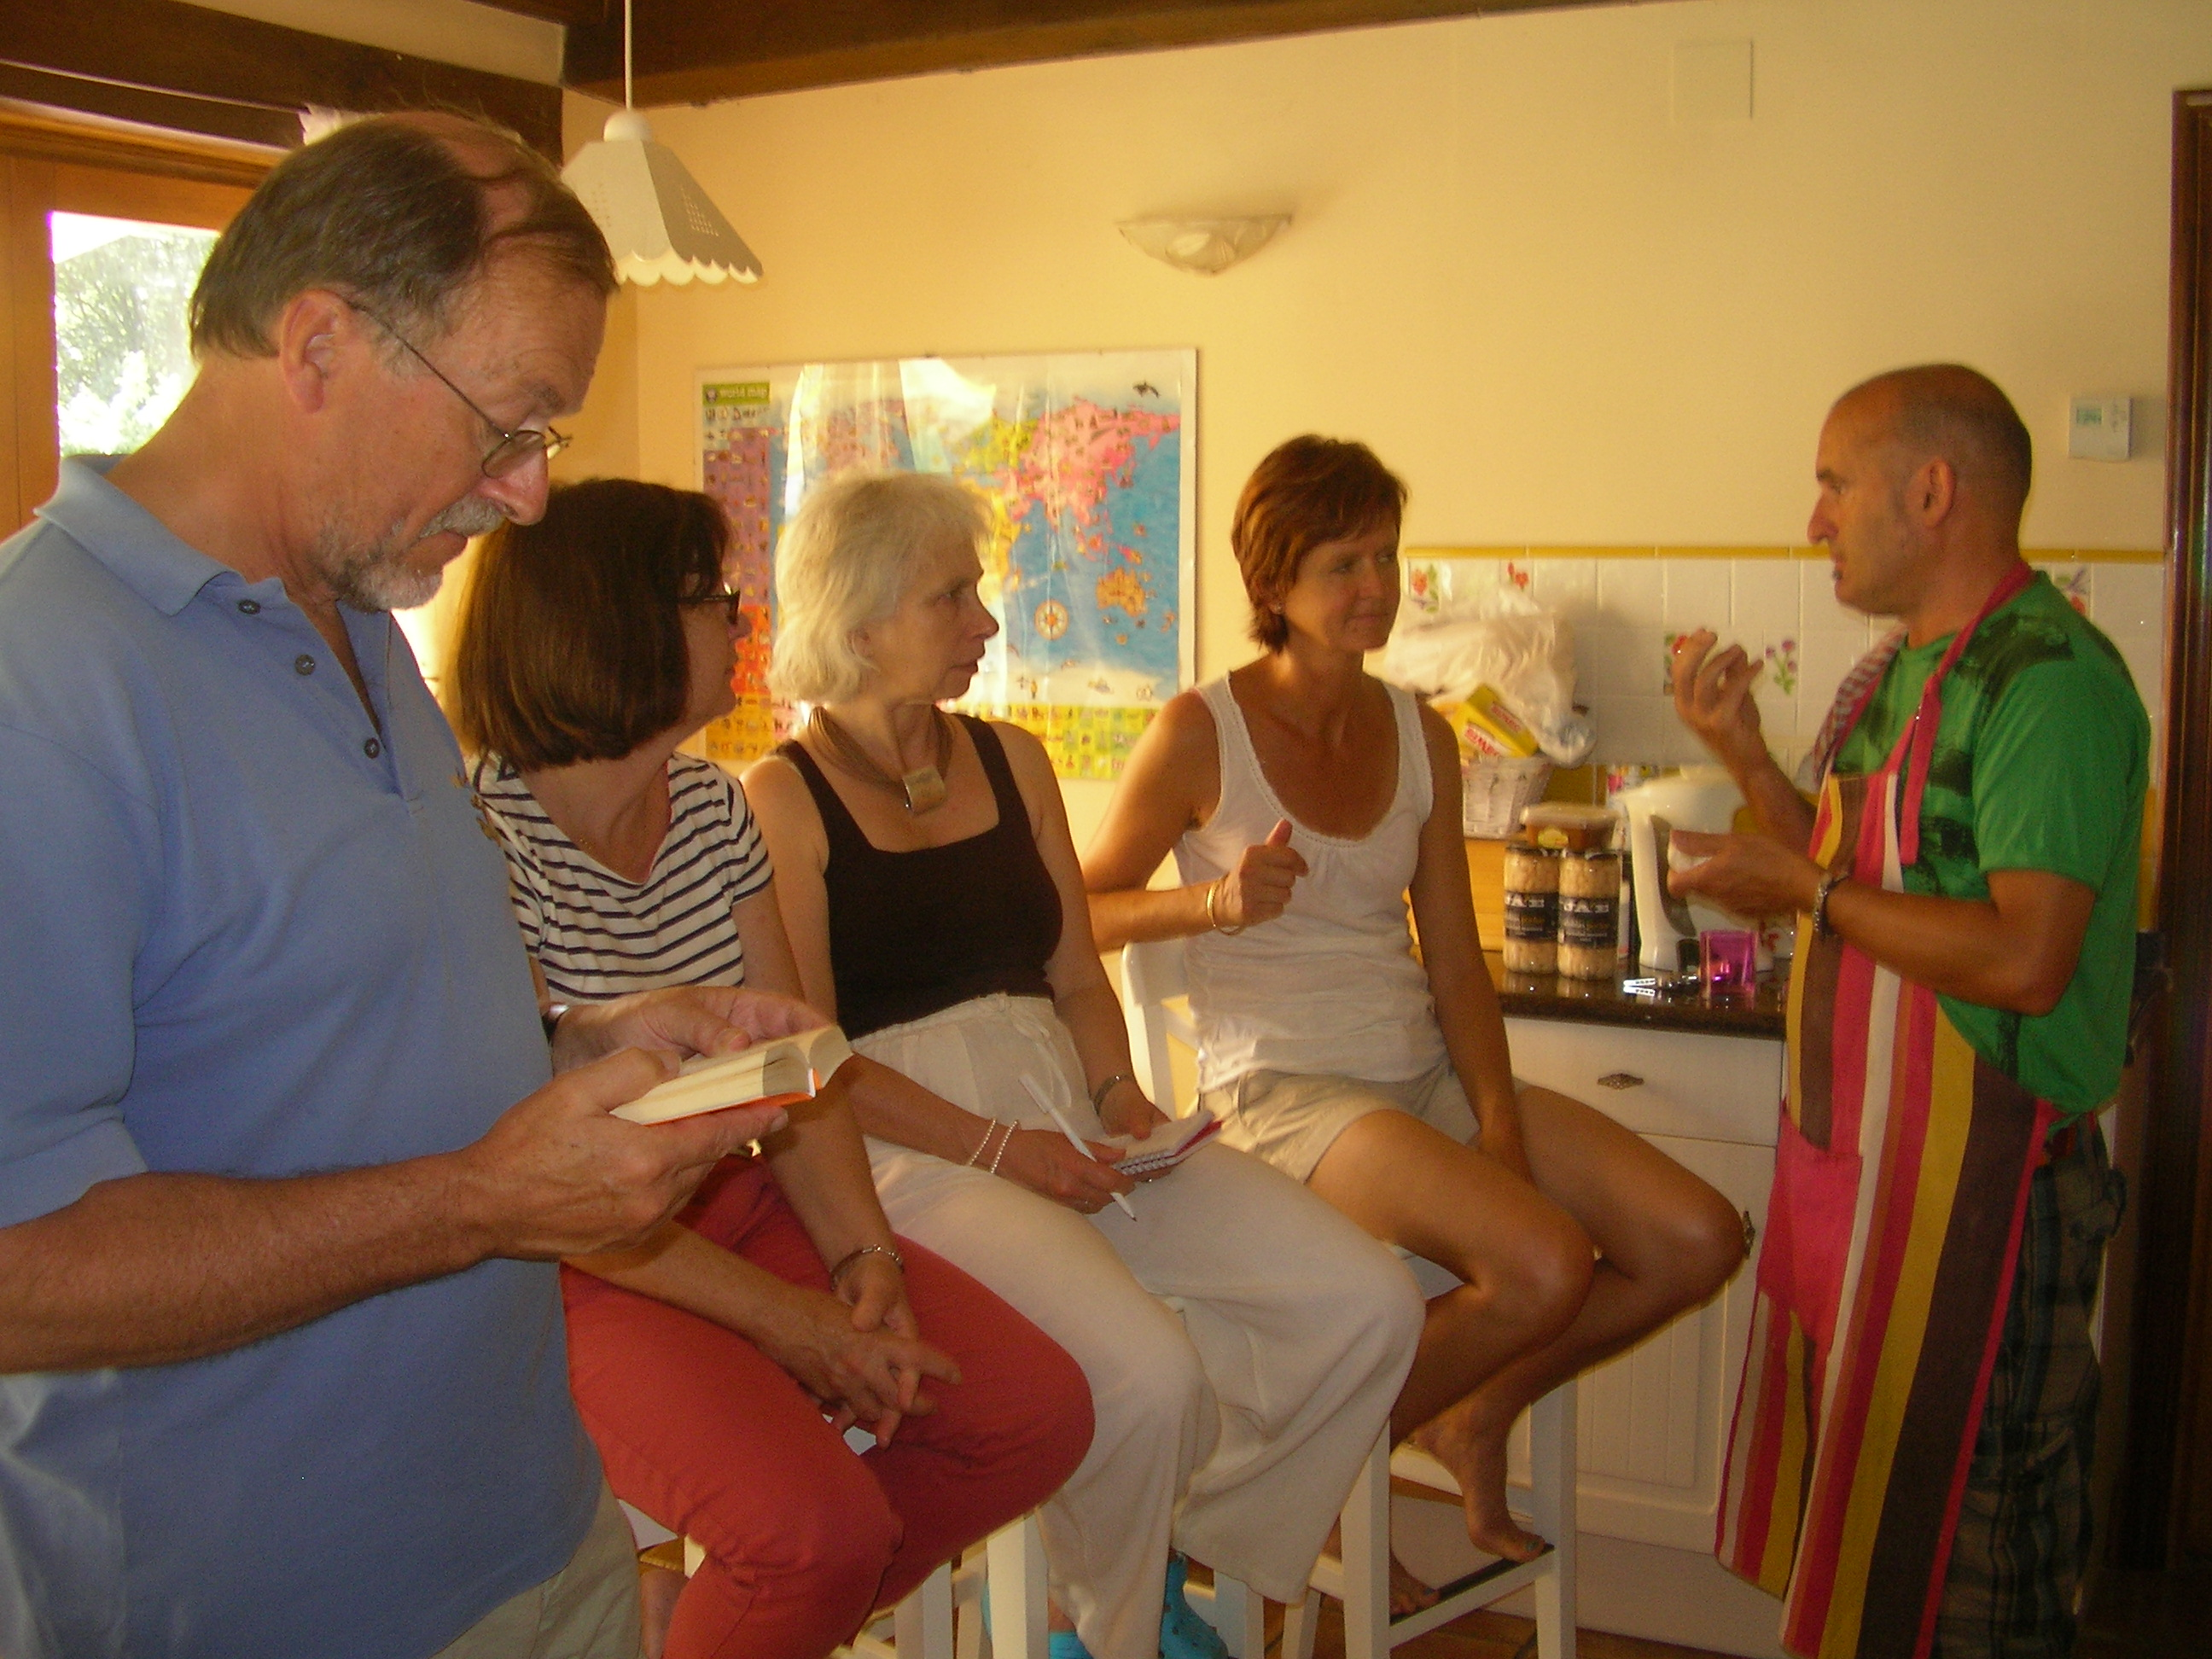 Spanish and cooking demonstration